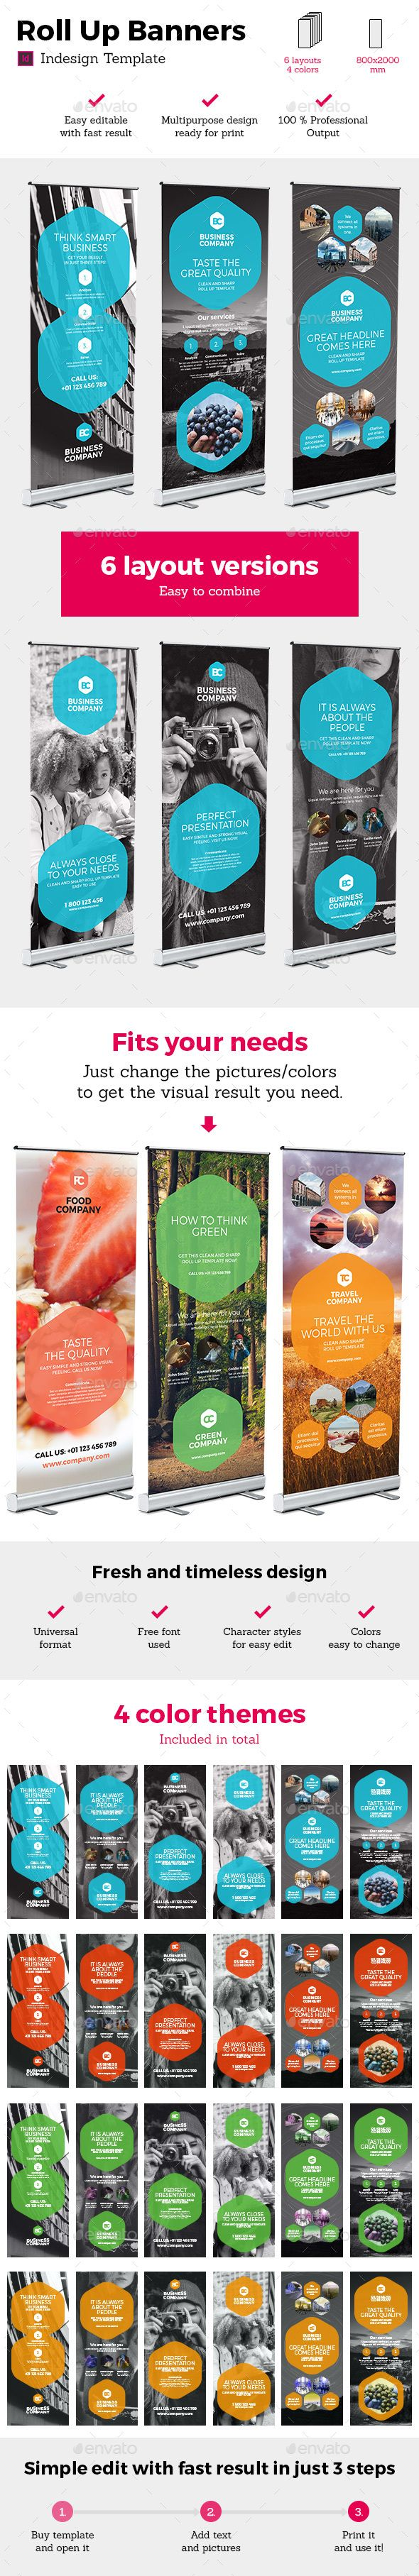 Rollup Stand Banner Display 24x Indesign — JPG Image #flat #corporate • Available here → https://graphicriver.net/item/rollup-stand-banner-display-24x-indesign-/15163369?ref=pxcr